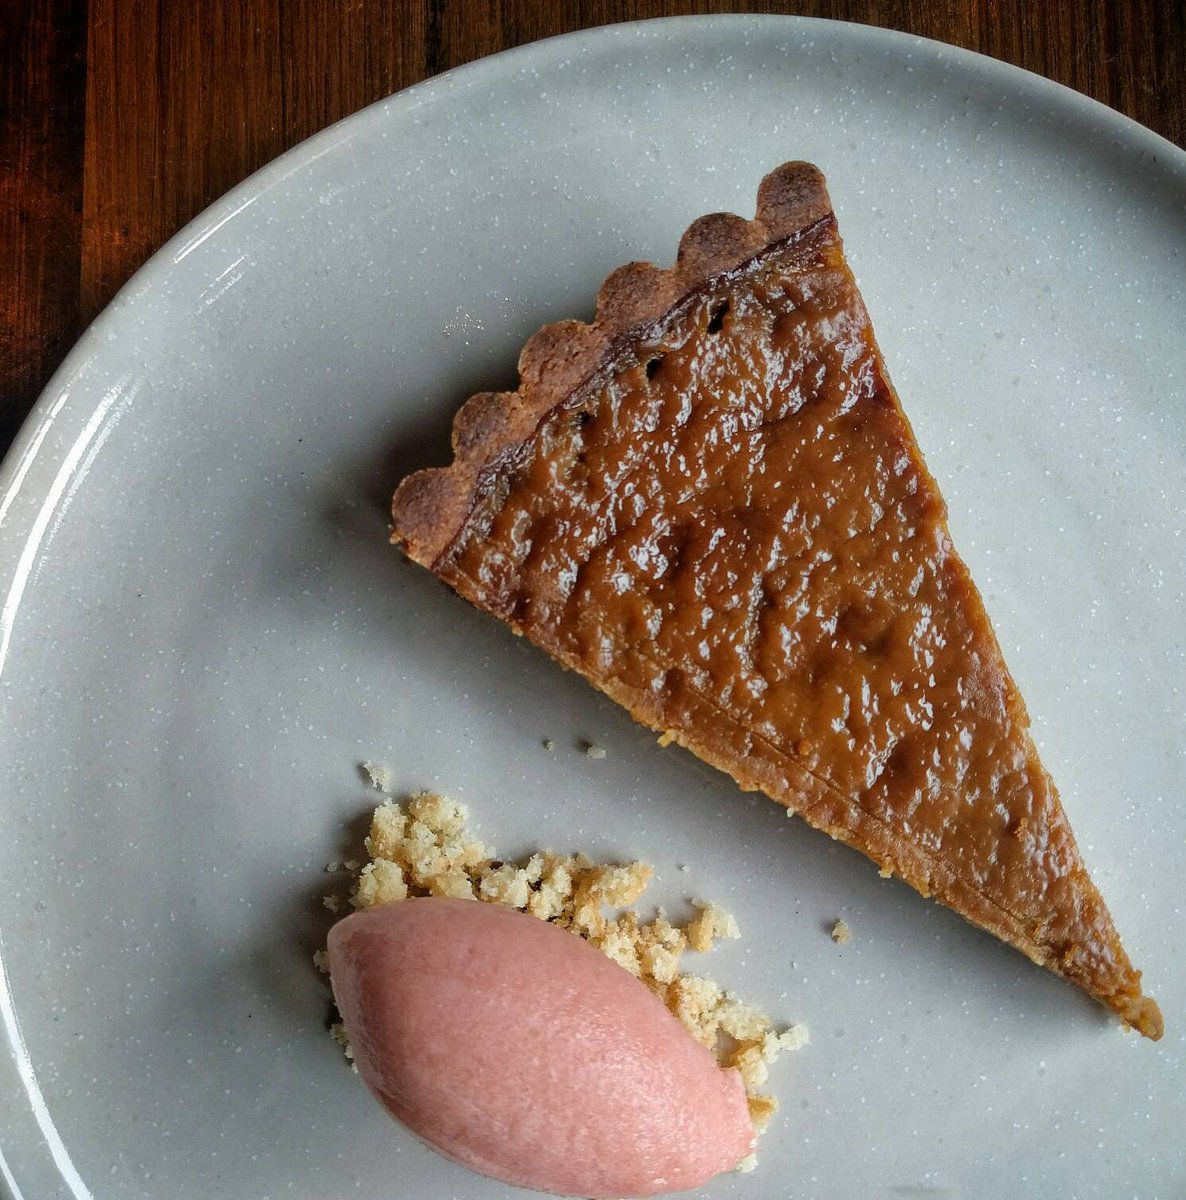 Your Tuesday lunch treat - sorghum pie with sweet potato ice cream. #atlfood #sorghumpie https://t.co/fN8t0NC8HI